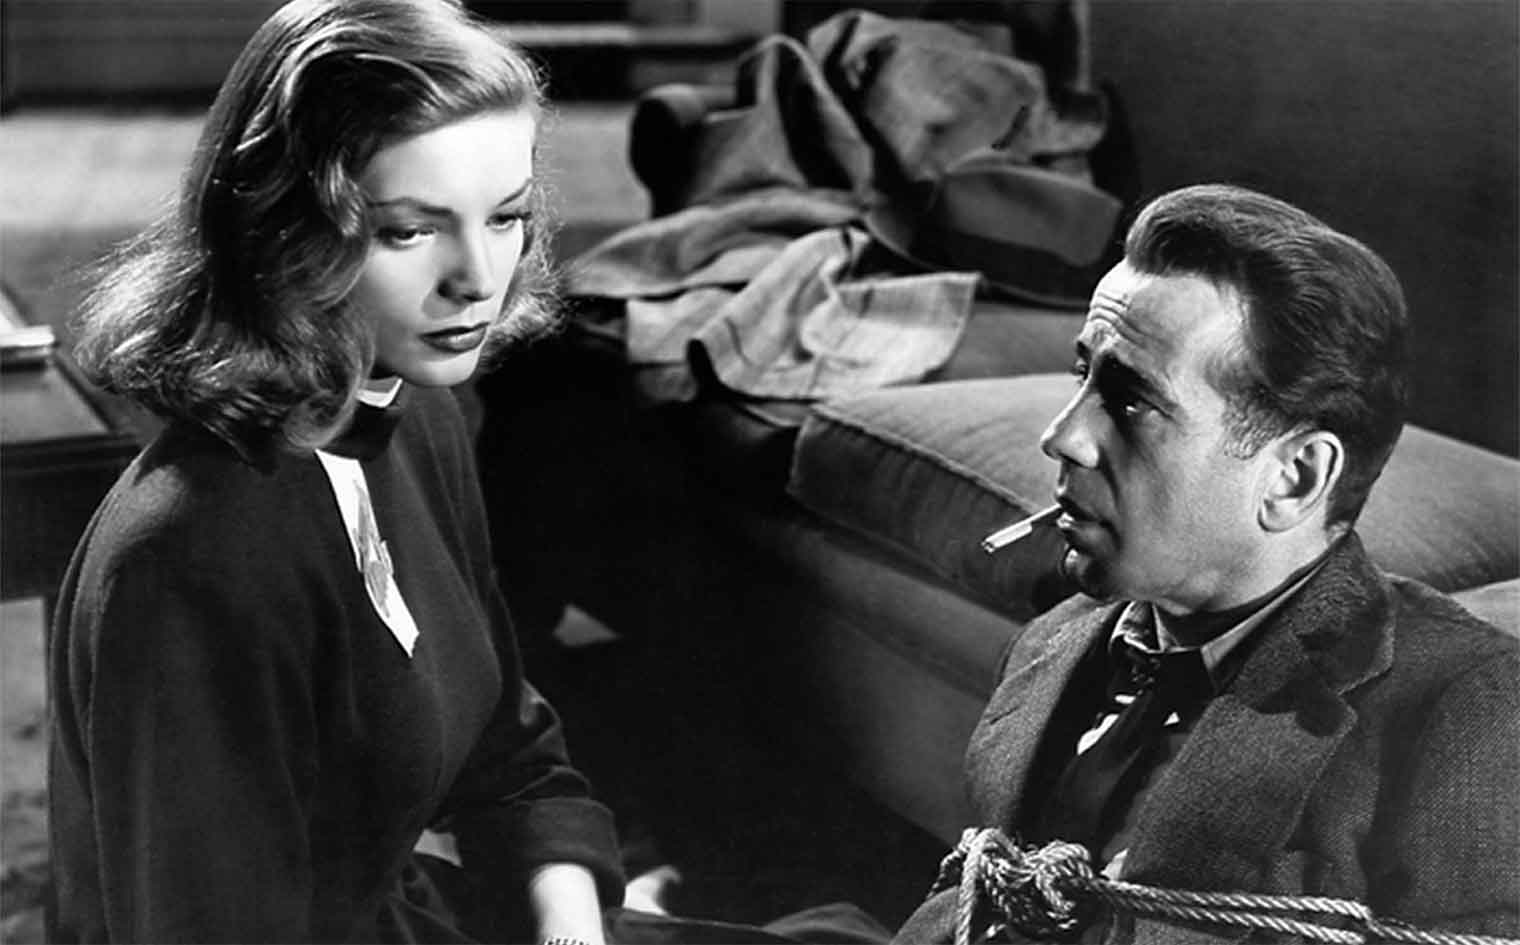 THE BIG SLEEP & TO HAVE AND HAVE NOT